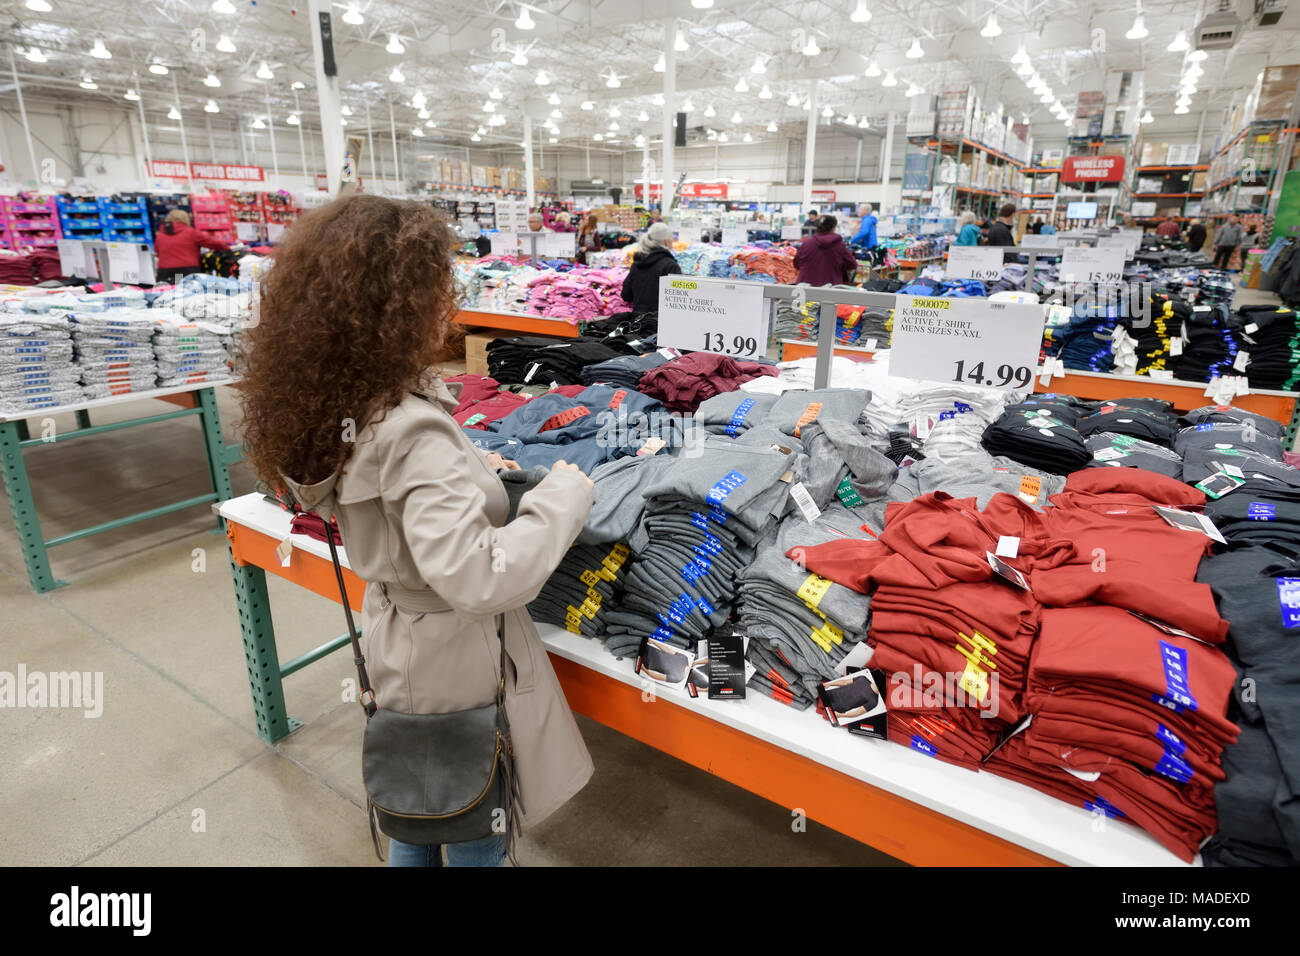 Woman picking a T-shirt at Costco Wholesale membership warehouse store men's clothing section. British Columbia, Canada 2017. - Stock Image